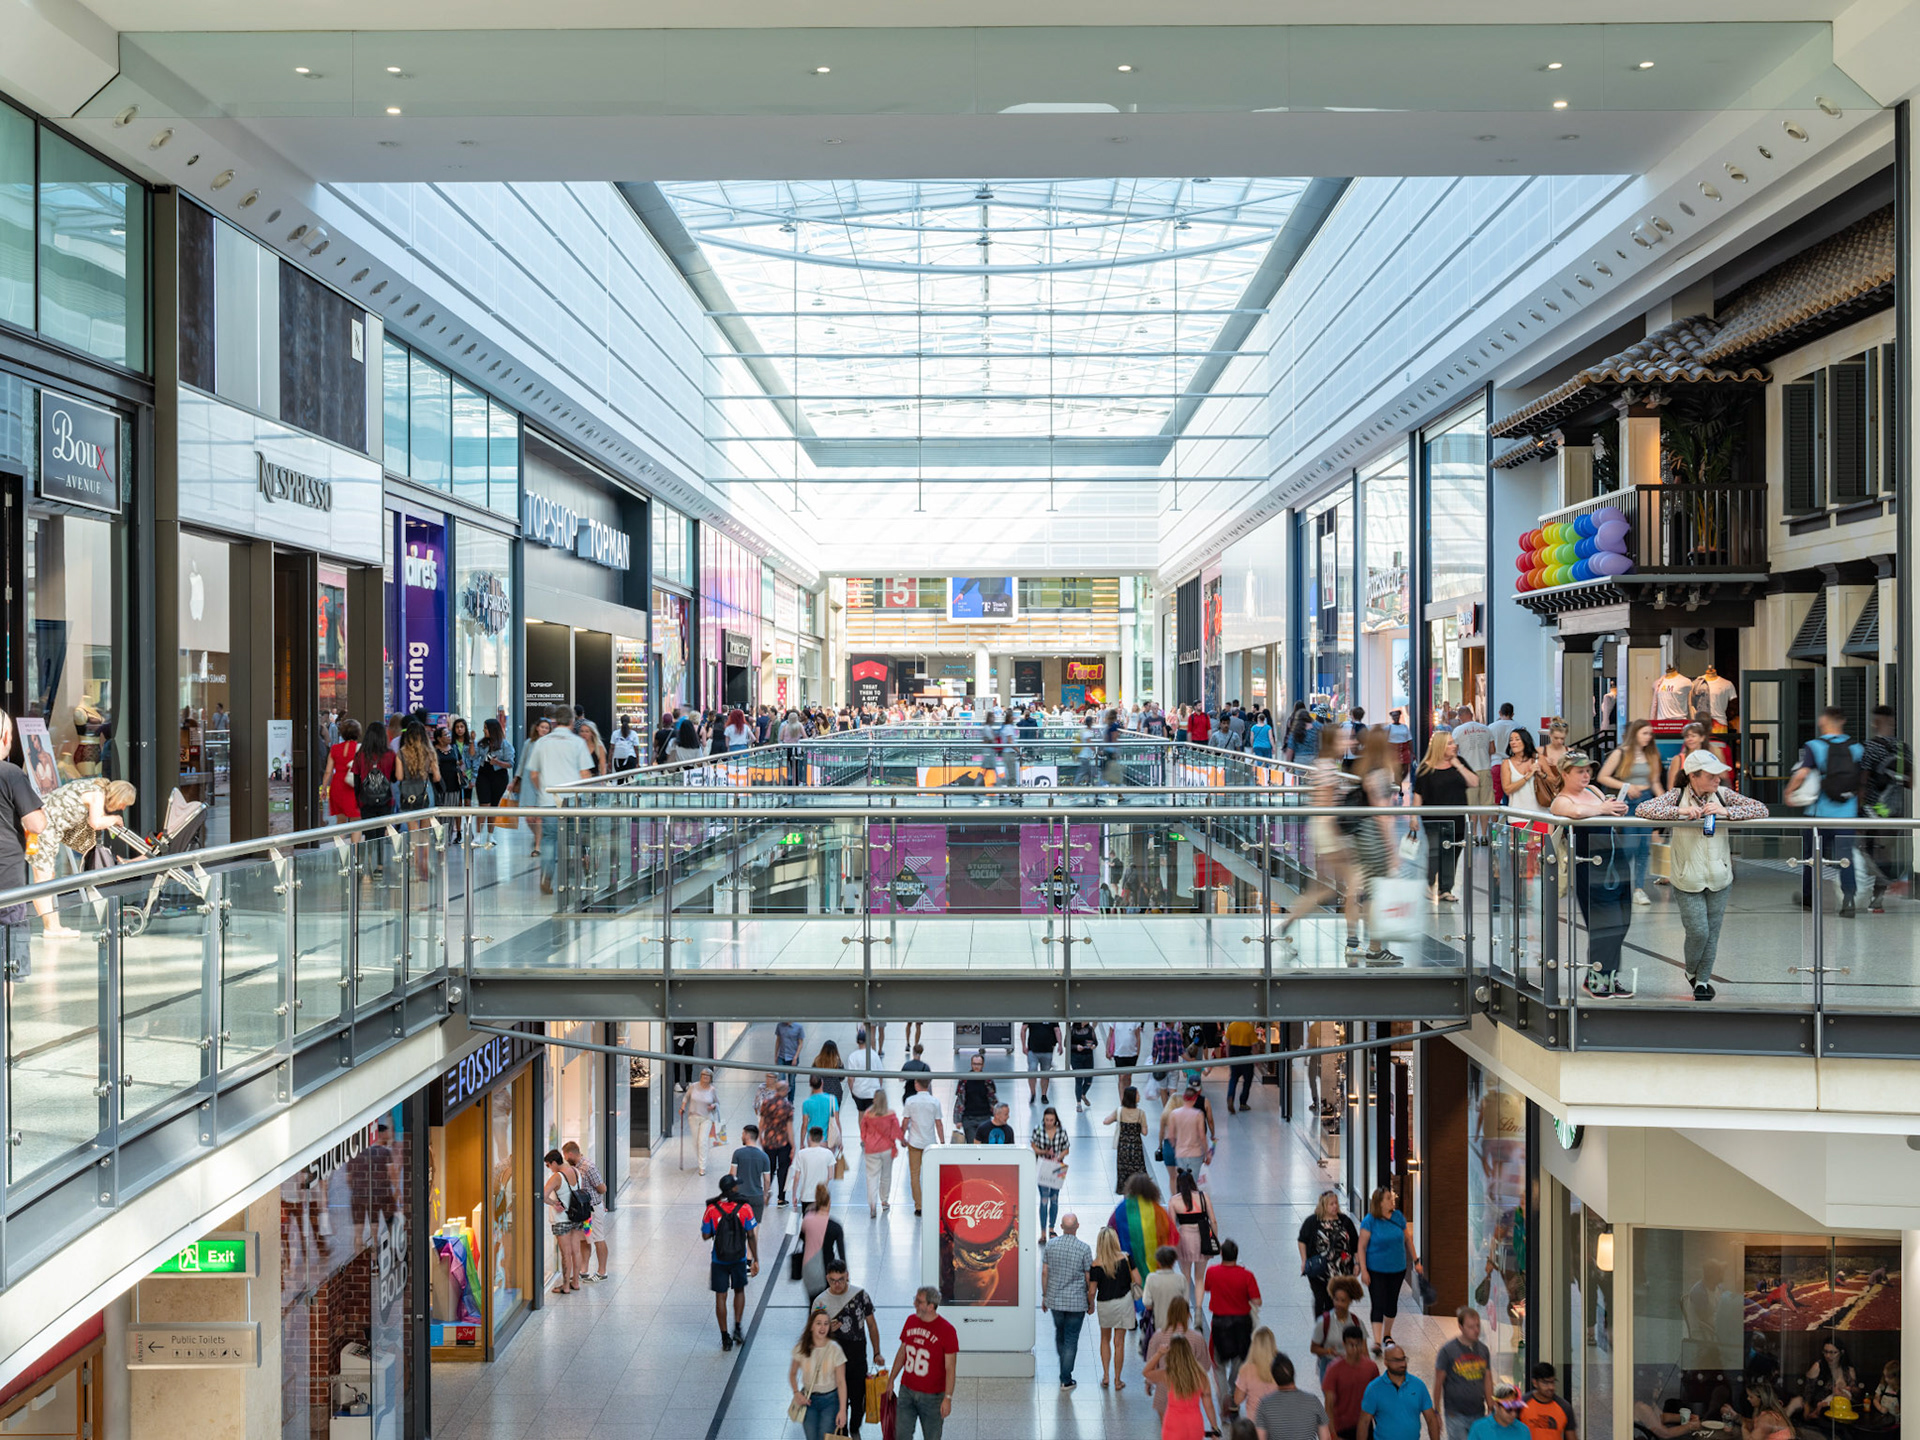 Architecture Photography Manchester Arndale Centre interior with lots of people